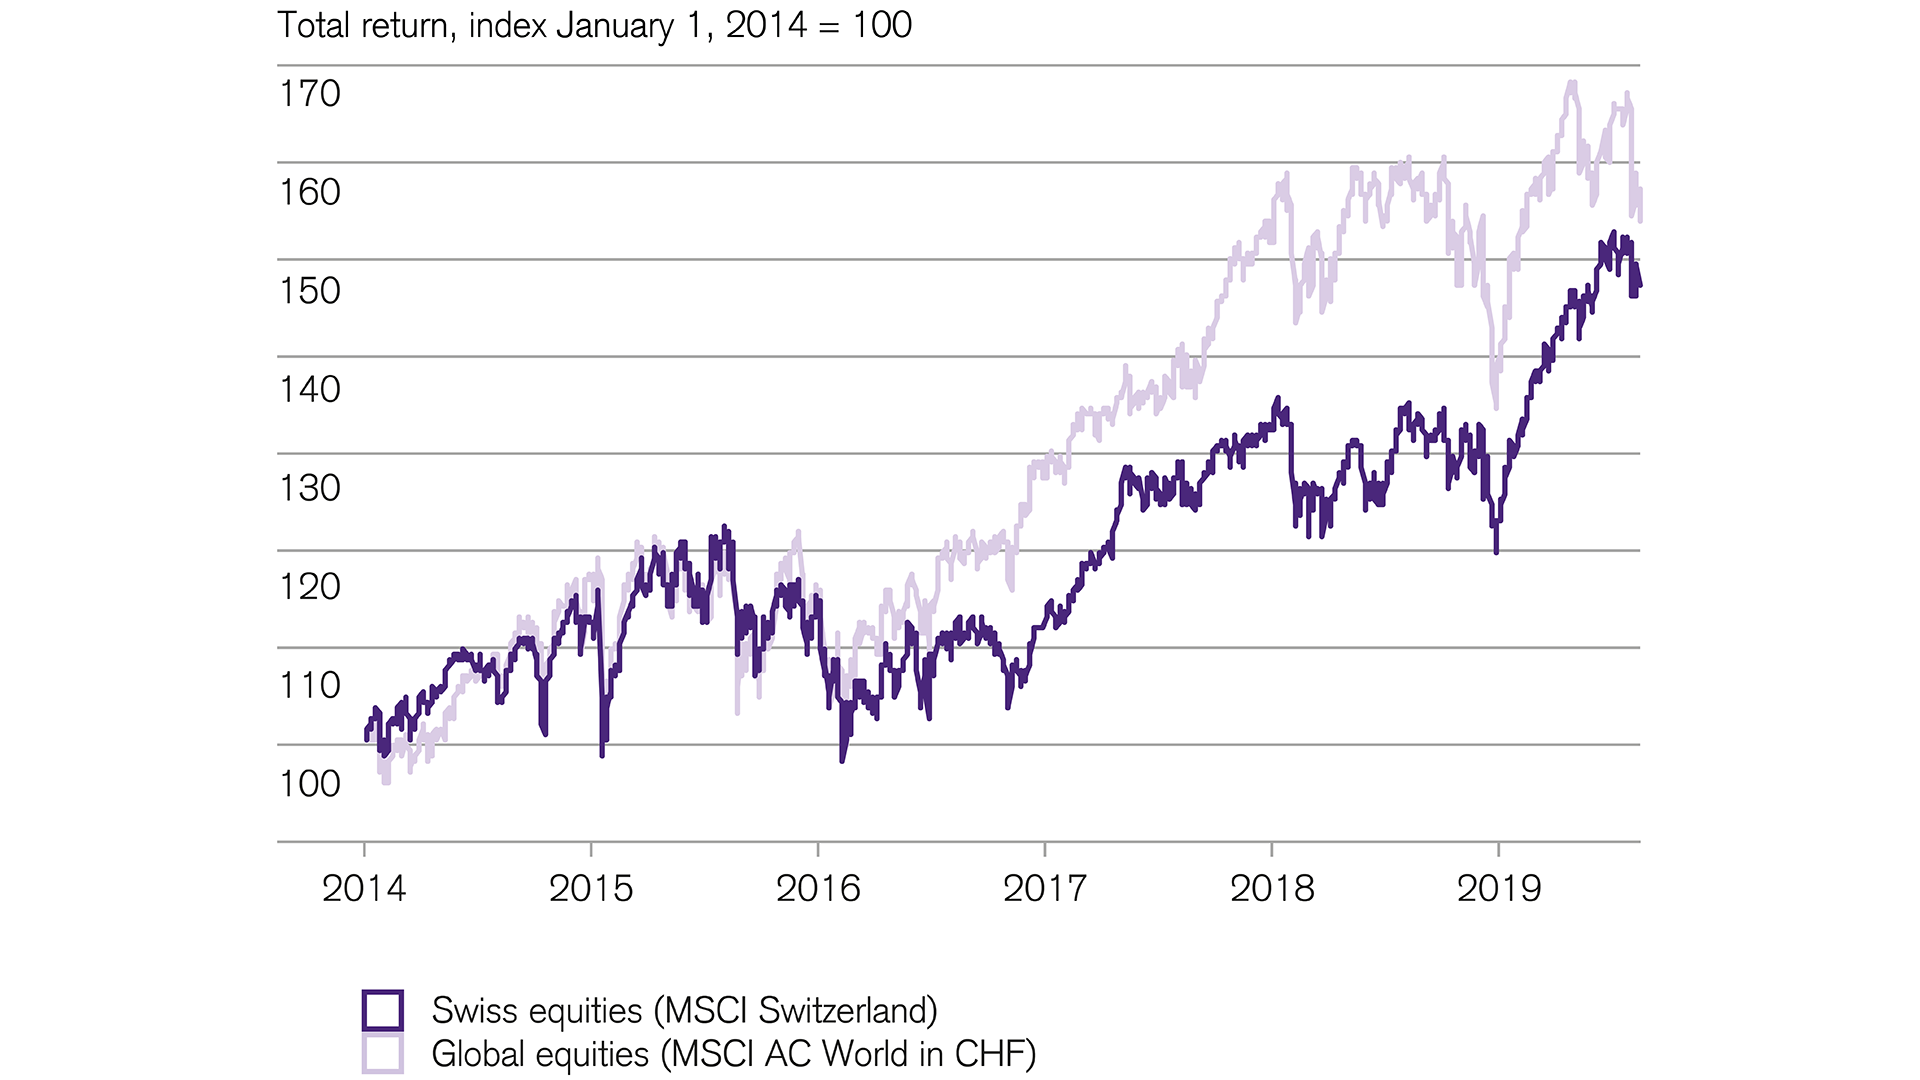 Strong returns for swiss equities in 2019